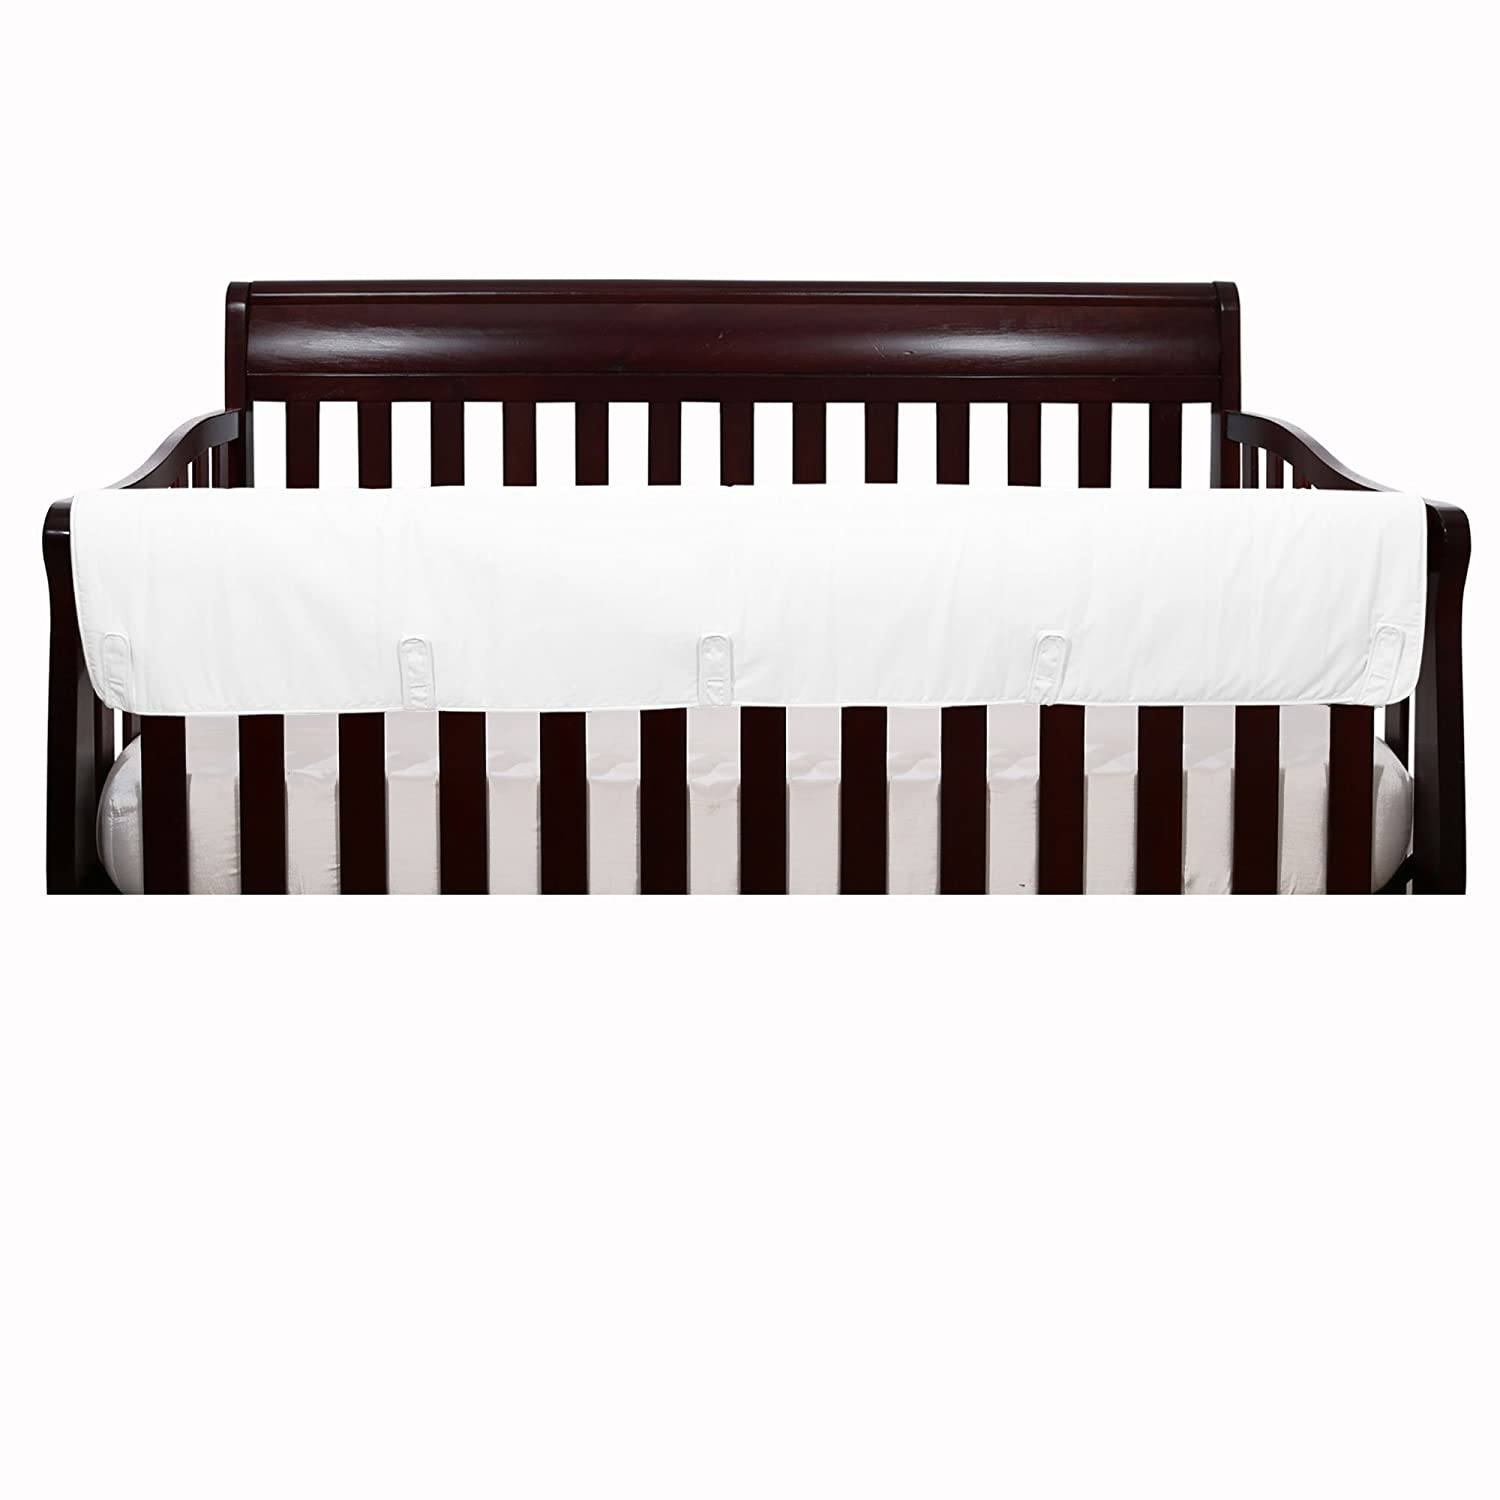 Solid Ivory Front Crib Rail Guard Padded Protector - 100% Cotton Fabrics The Peanut Shell RGLPSIVY